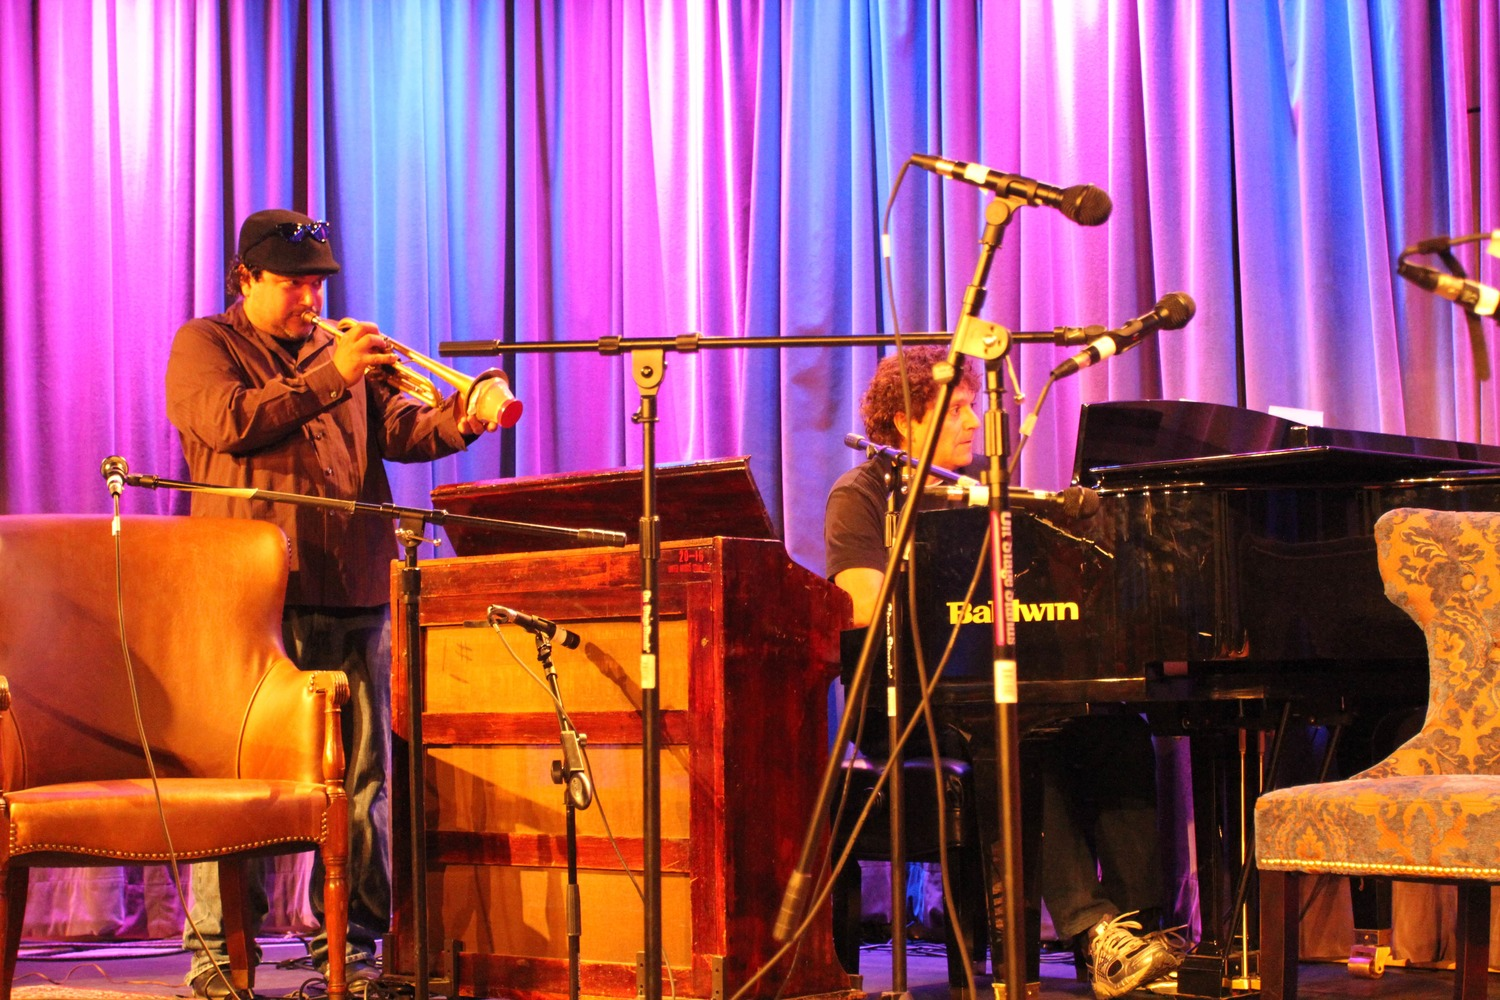 from left to right, performing duo Asdru Sierra of Ozomatli (vocals and trumpet) and Anthony Marinelli (piano and celeste) playing traditional Mexican songs at the Grammy Museum, Hollywood, CA, 2012